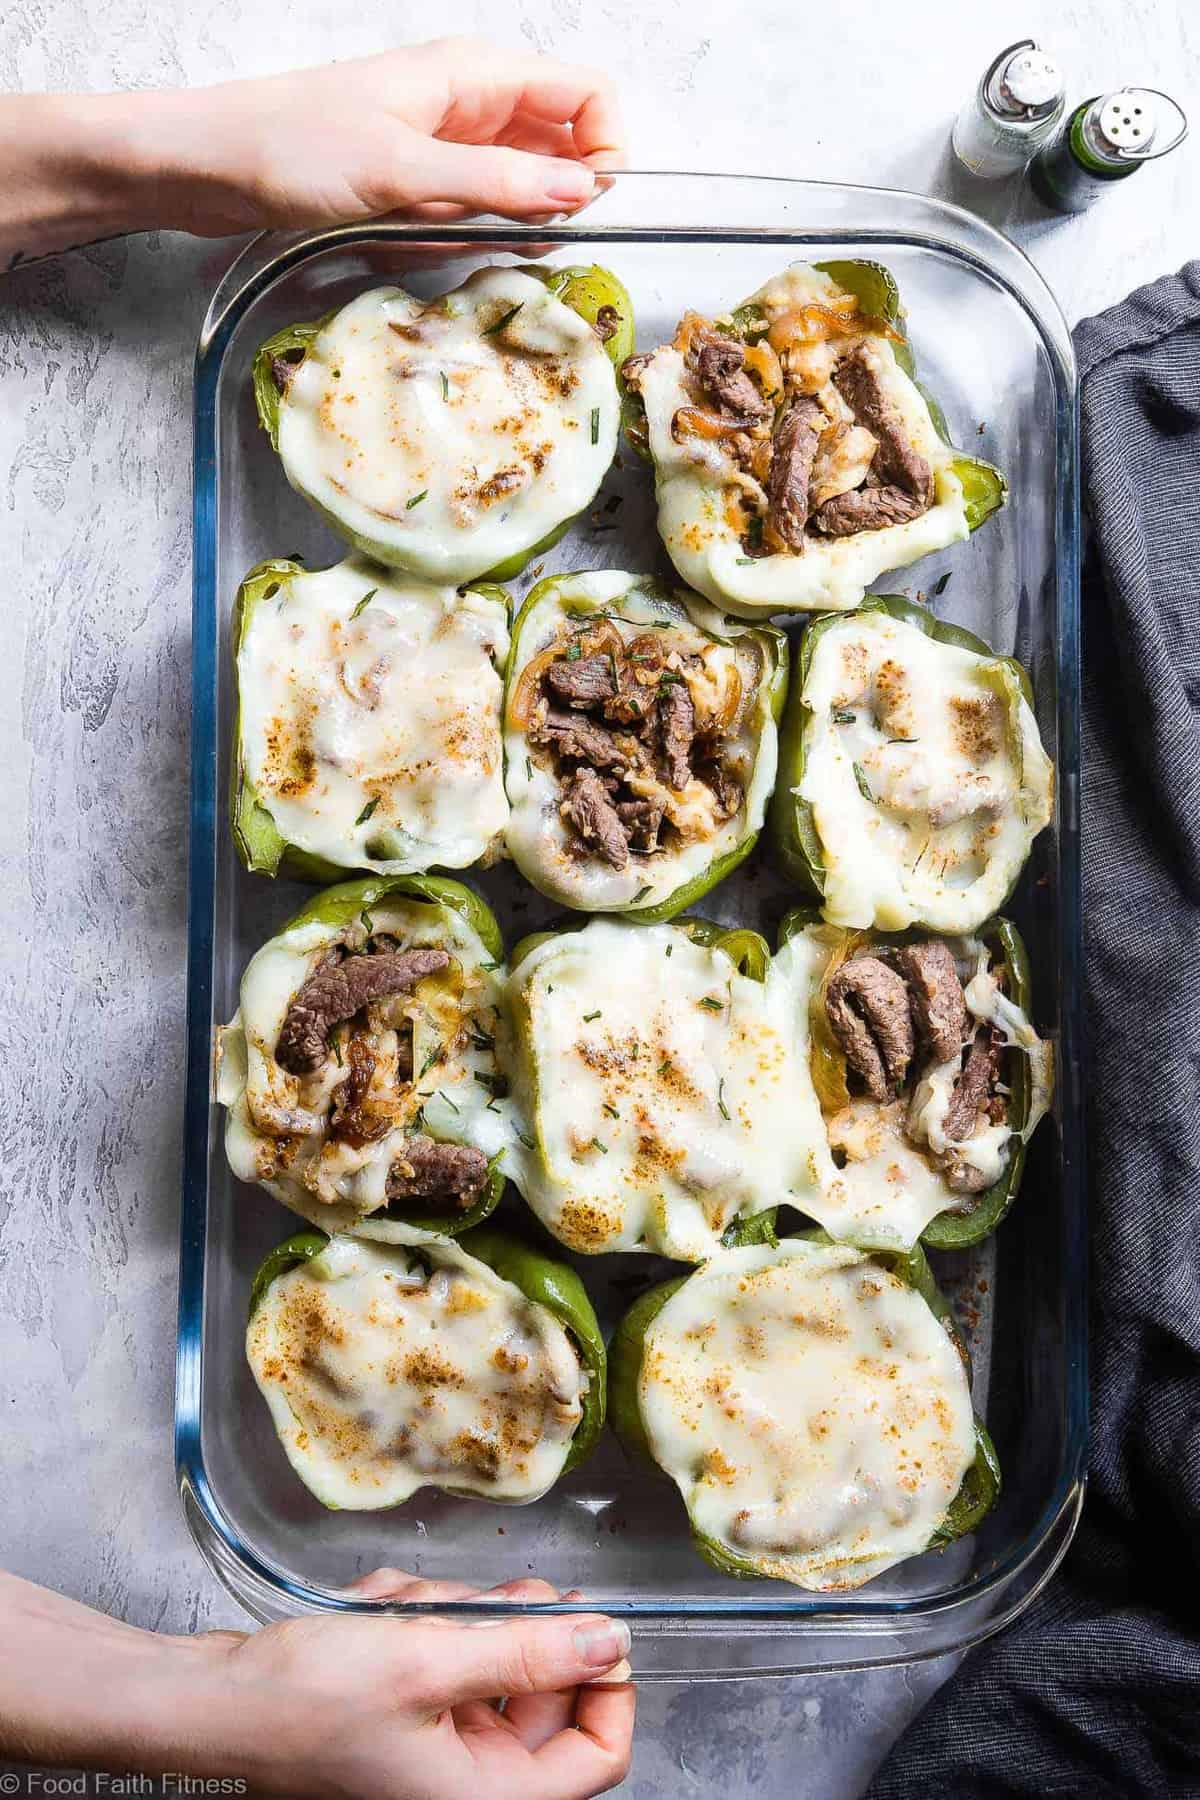 Low Carb Keto Philly Cheesesteak Stuffed Peppers - These low carb stuffed bell peppershave all the flavors of your favorite sandwich in a healthy, low carb, easy weeknight meal that will please even picky eaters! Healthy comfort food at its best! | #Foodfaithfitness | #Glutenfree #Keto #Lowcarb #Healthy #Grainfree